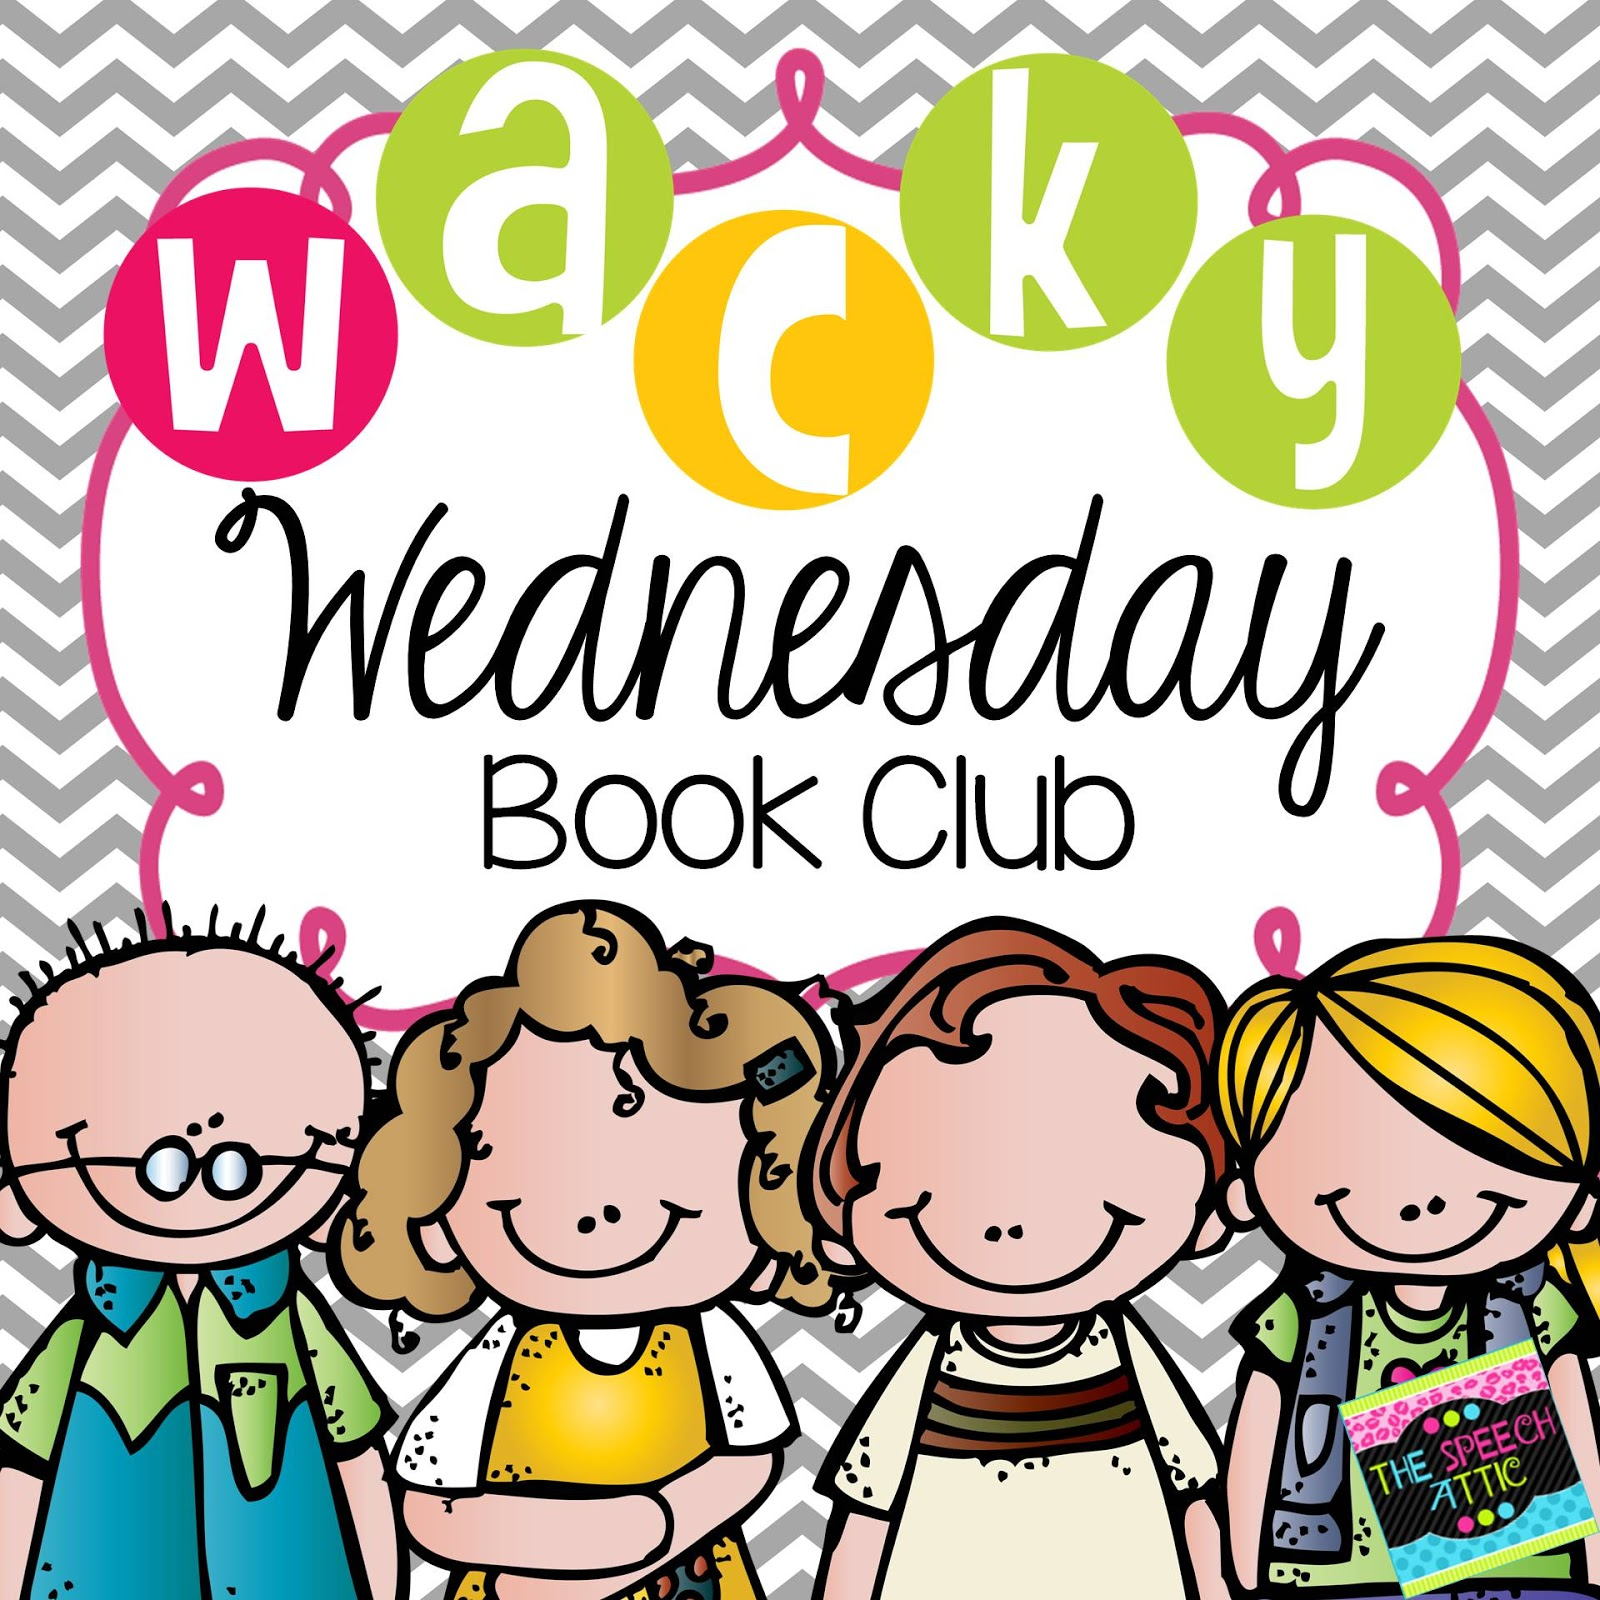 The Speech Attic Wacky Wednesday Book Club If You Take A